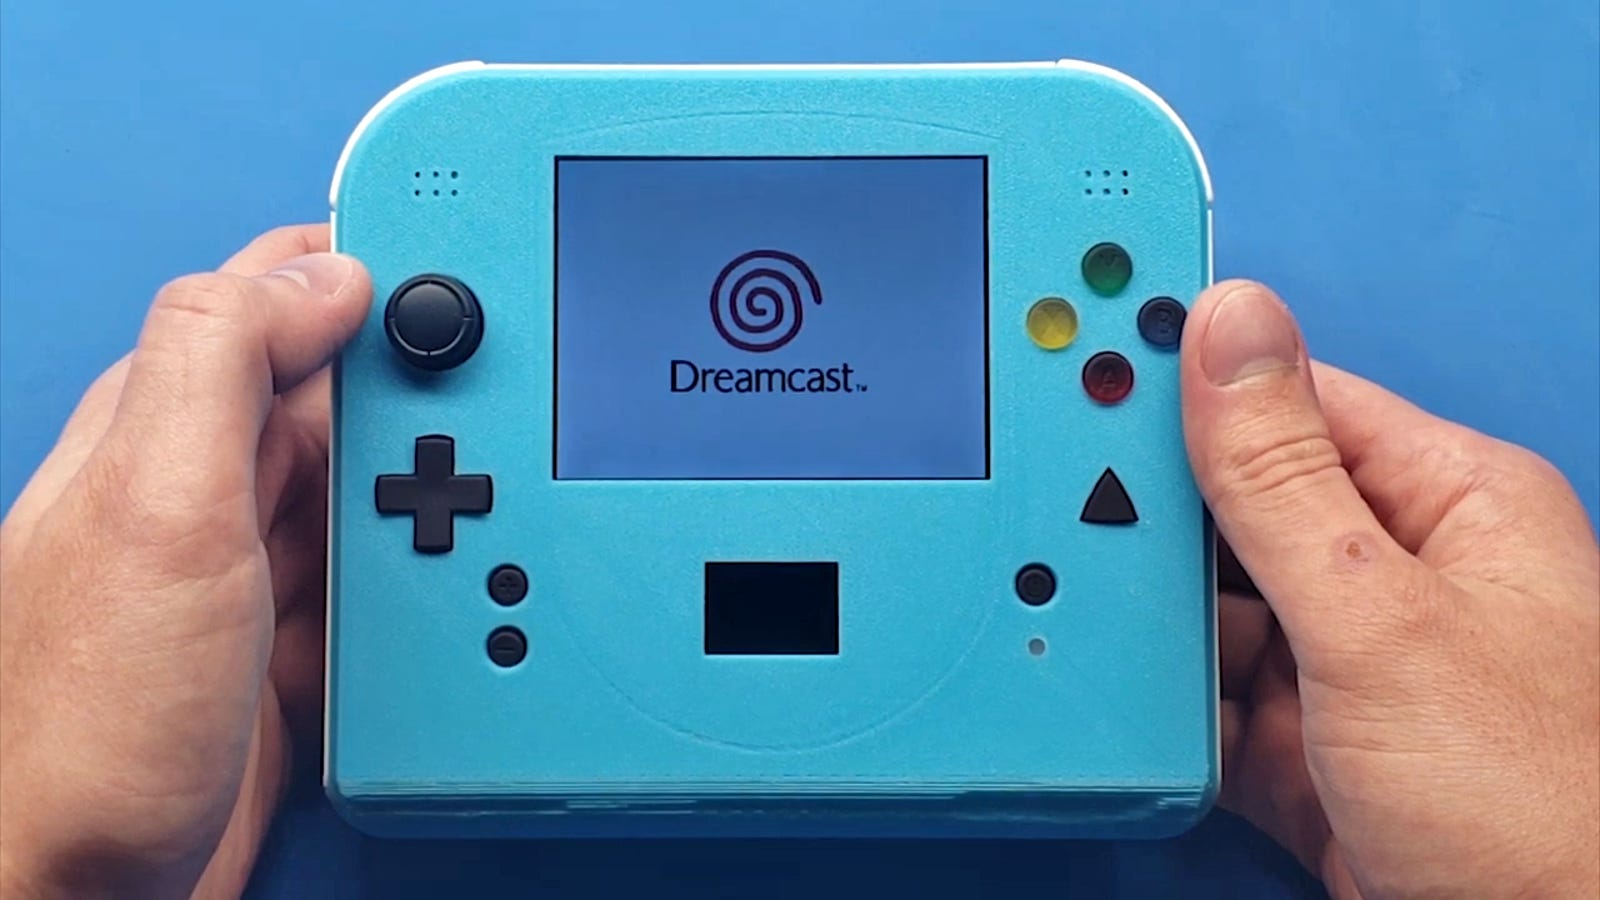 I'll Take This Custom Handheld Sega Dreamcast Over the Switch Lite Any Day